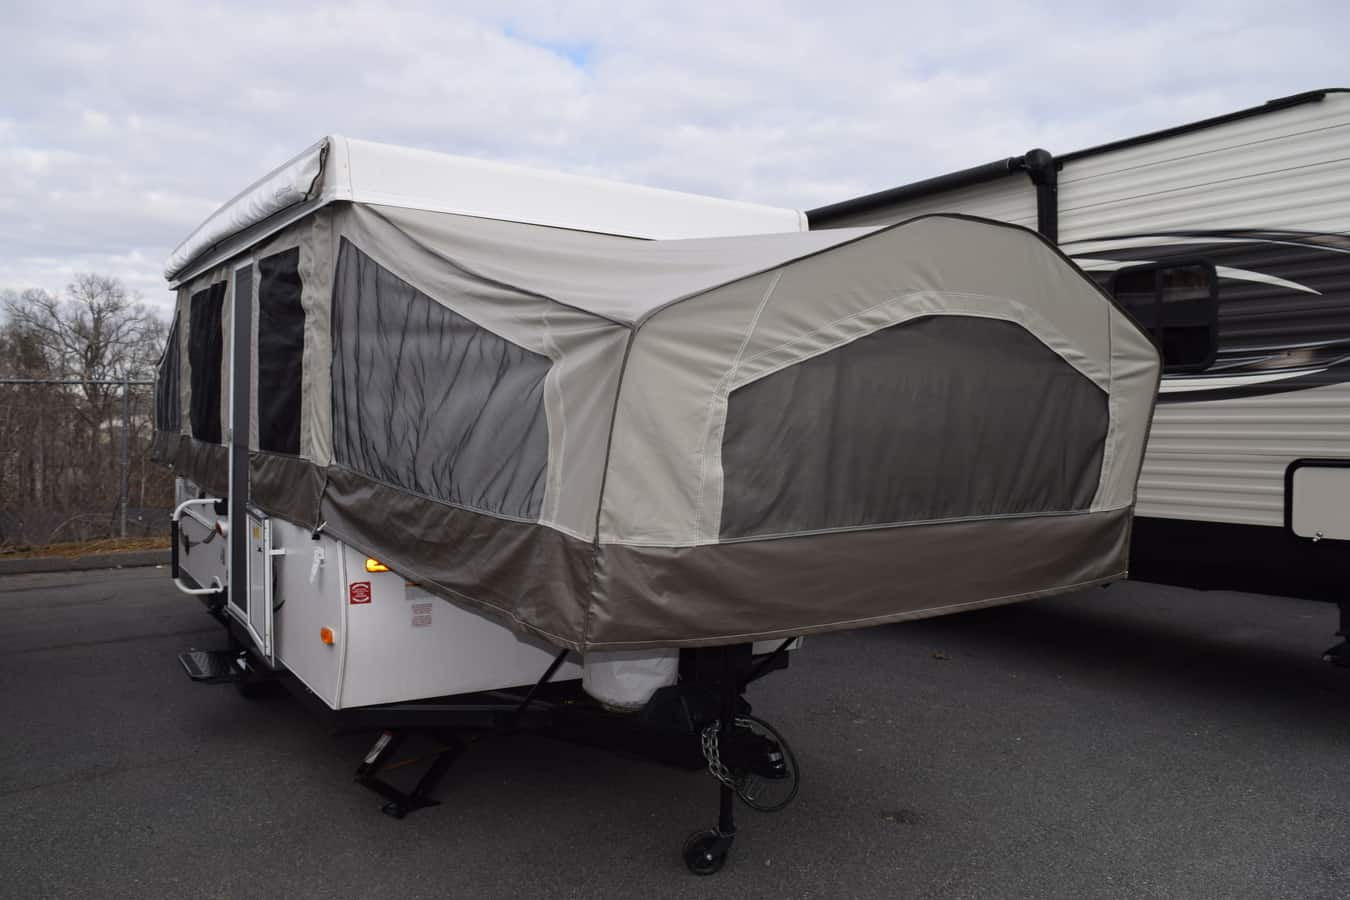 USED 2016 Forest river Flagstaff 227 - Three Way Campers